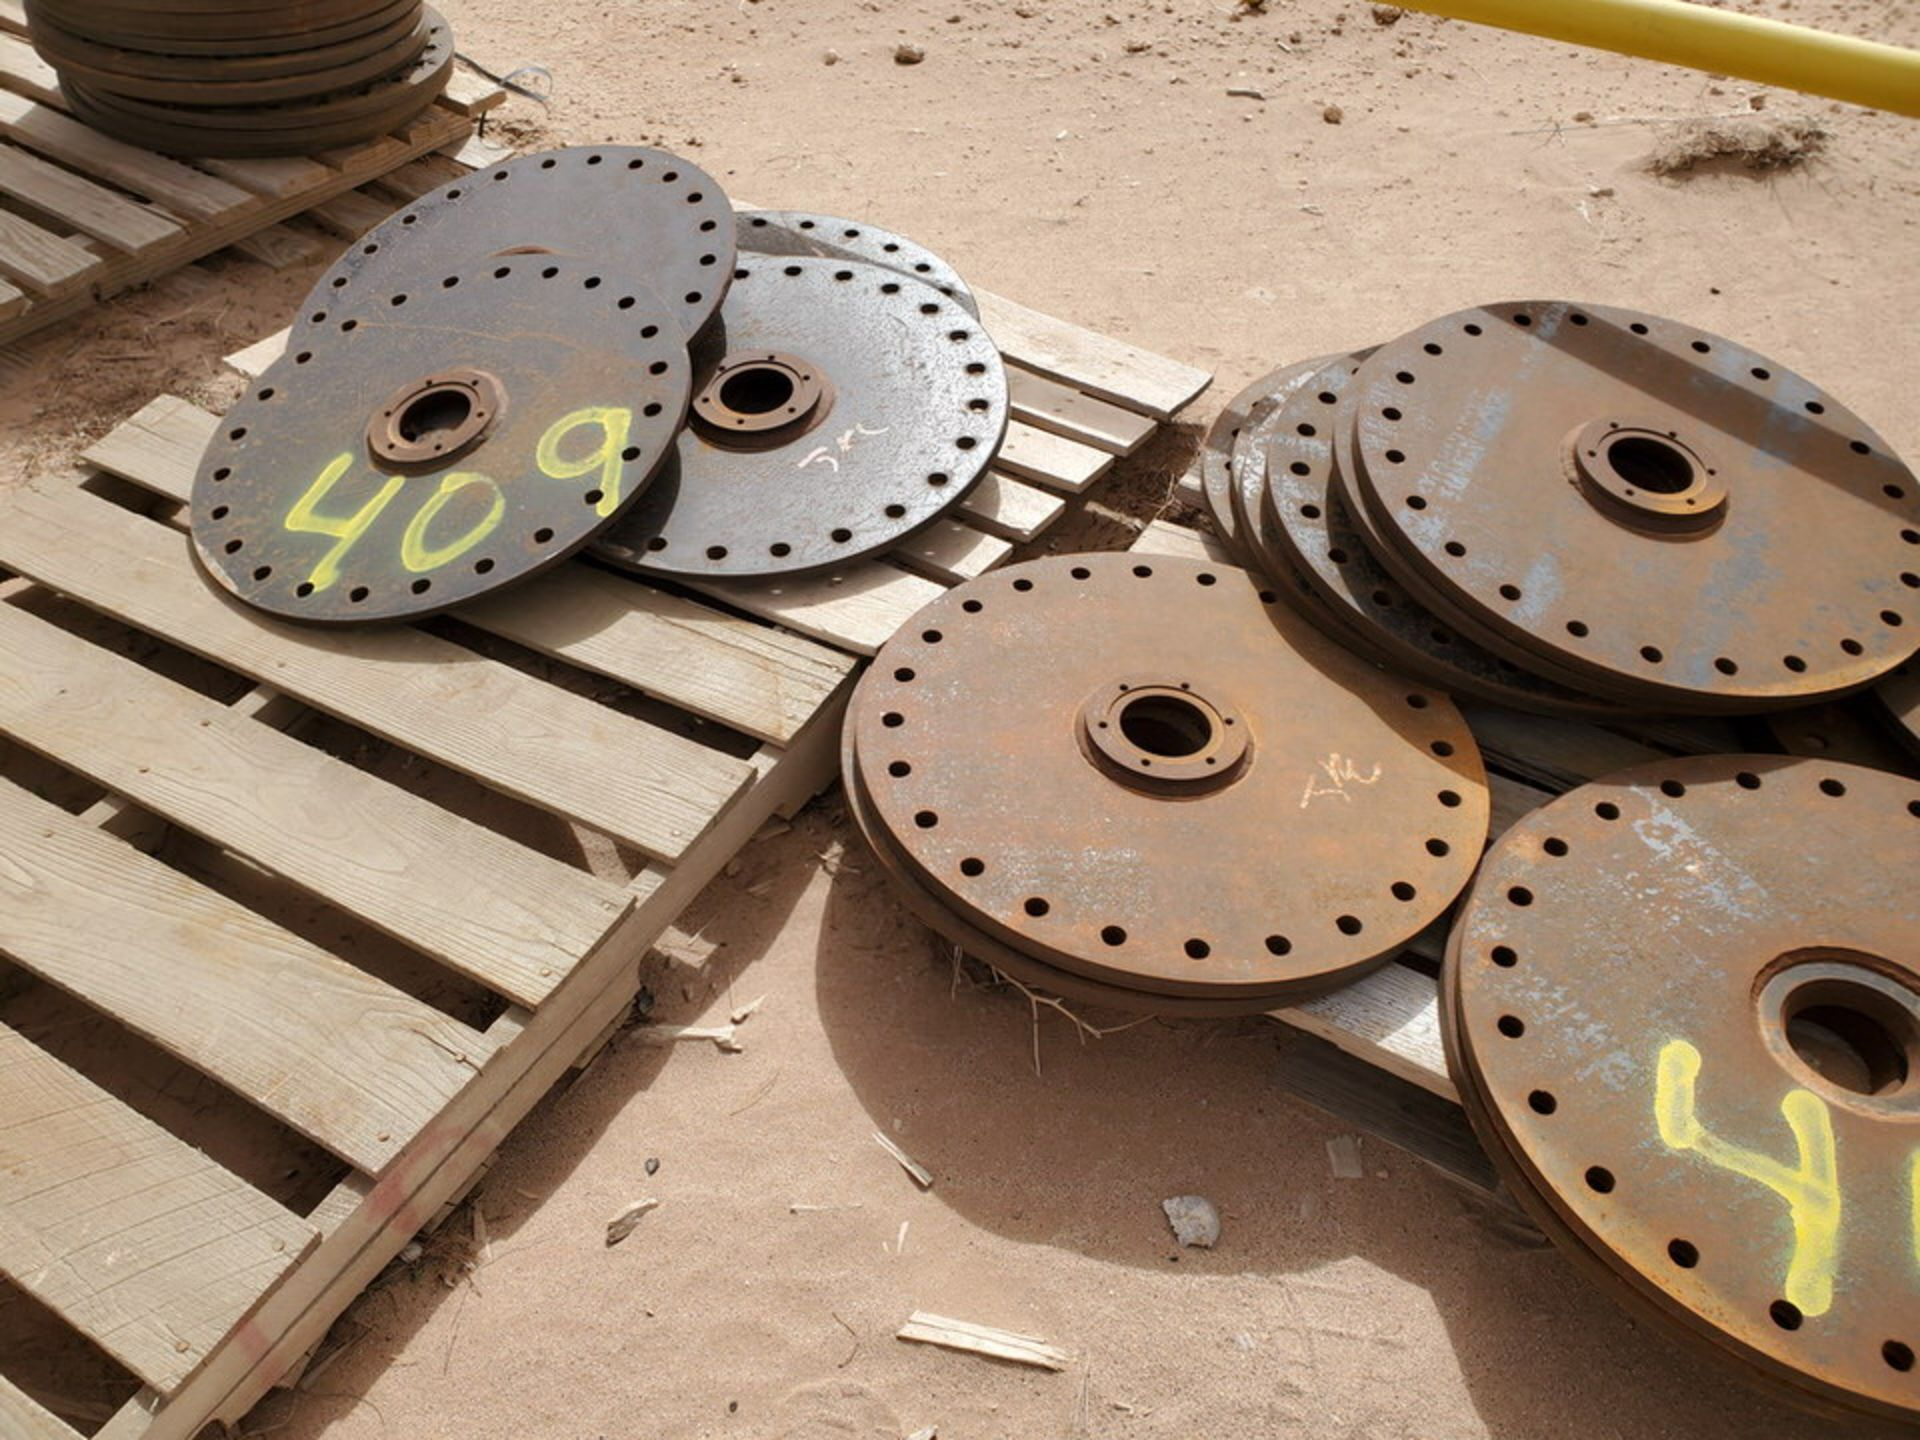 "(20) Flanges 3"" x 23-1/8"" O.D. - Image 9 of 11"